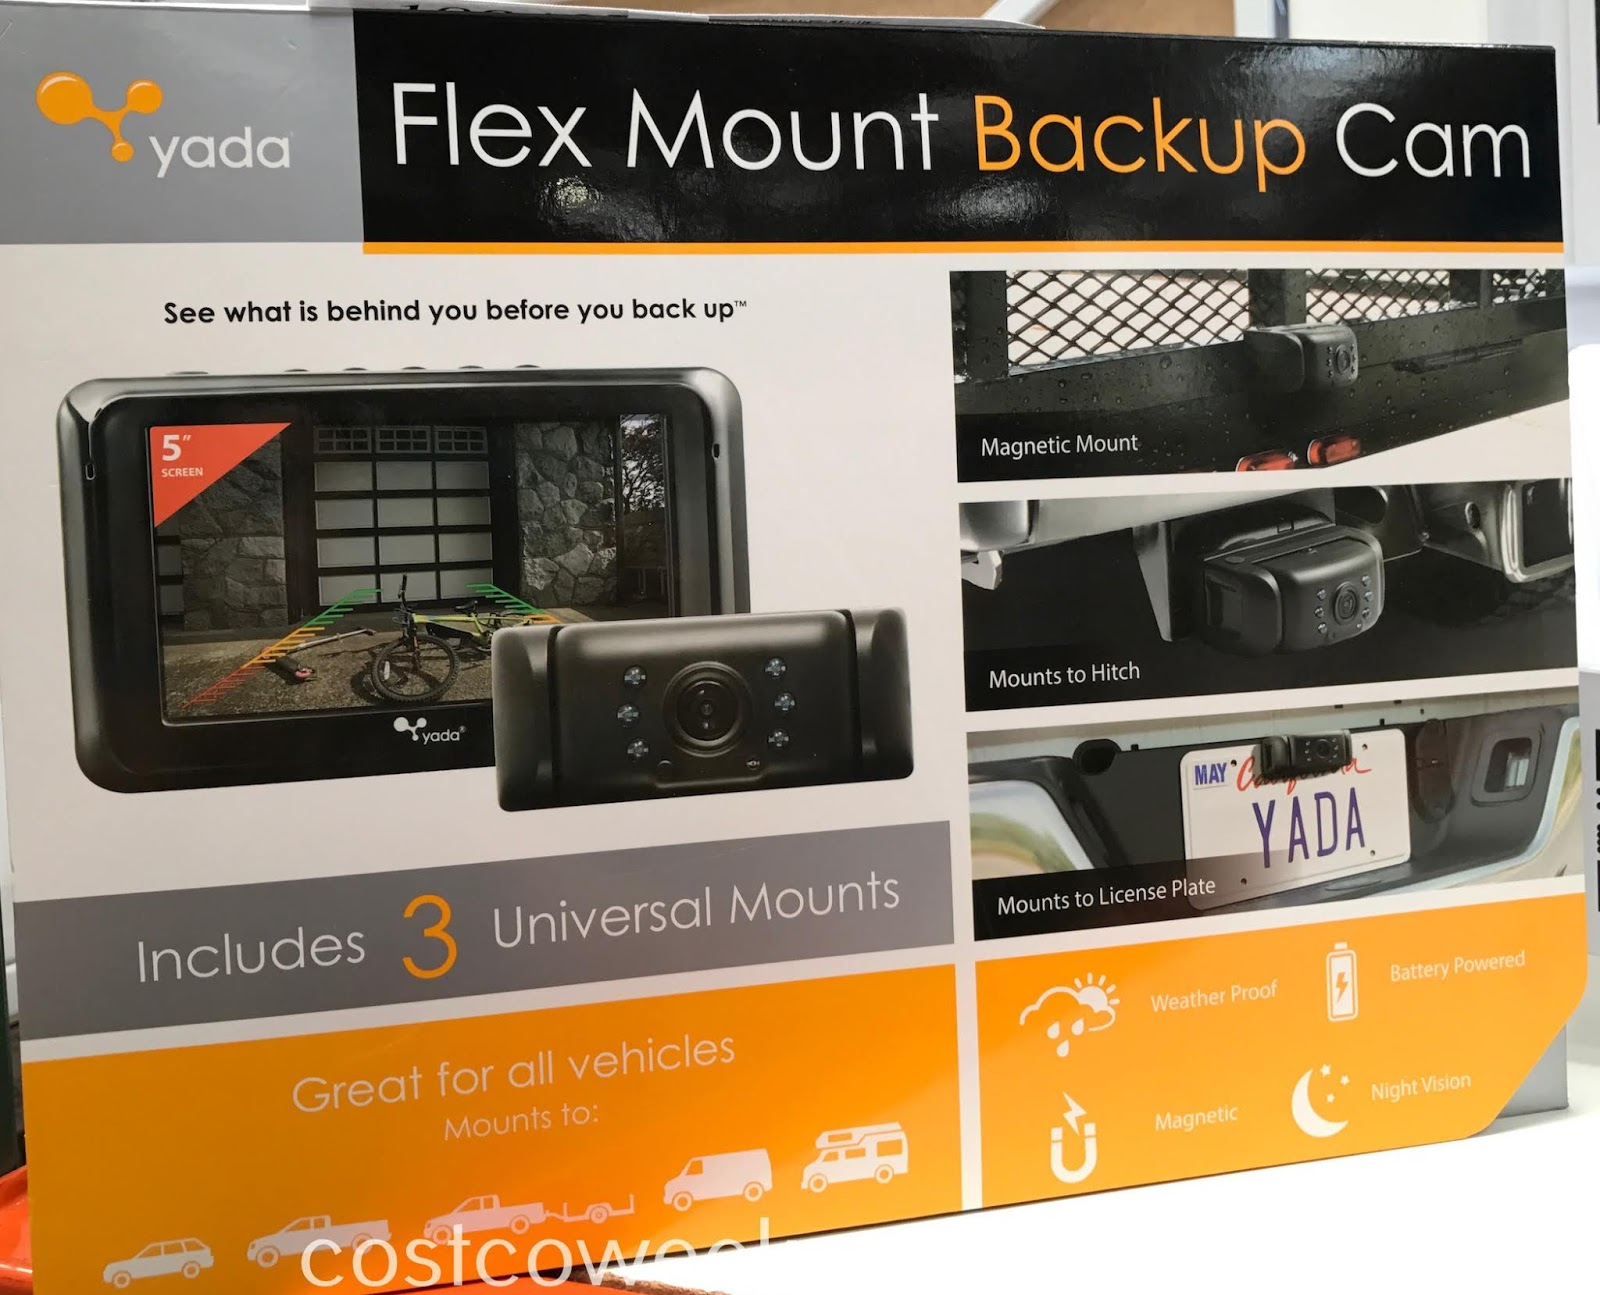 Make going in reverse in your car a lot easier with the Yada Flex Mount Backup Camera